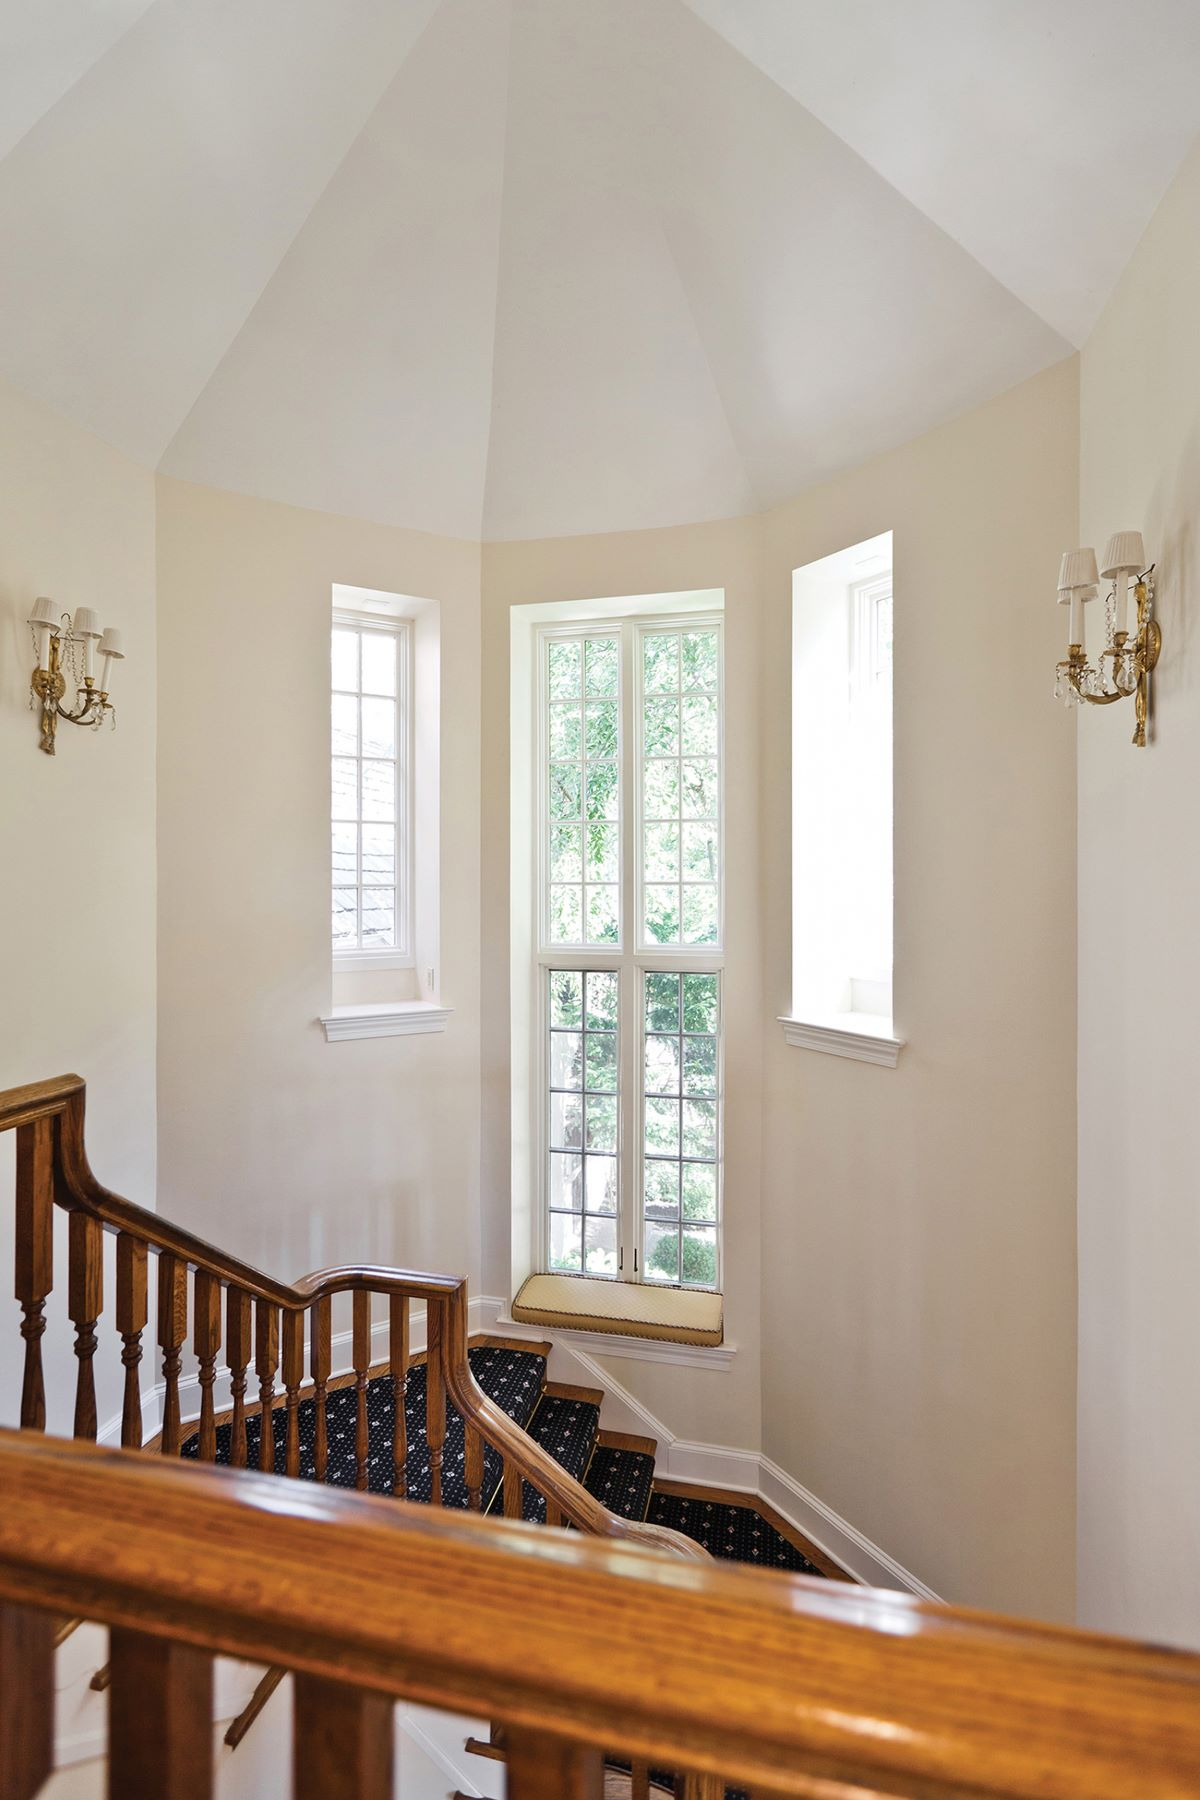 Additional photo for property listing at French Manor Home 55 MAHER LN, Upper Makefield, Pennsylvania 18940 Estados Unidos